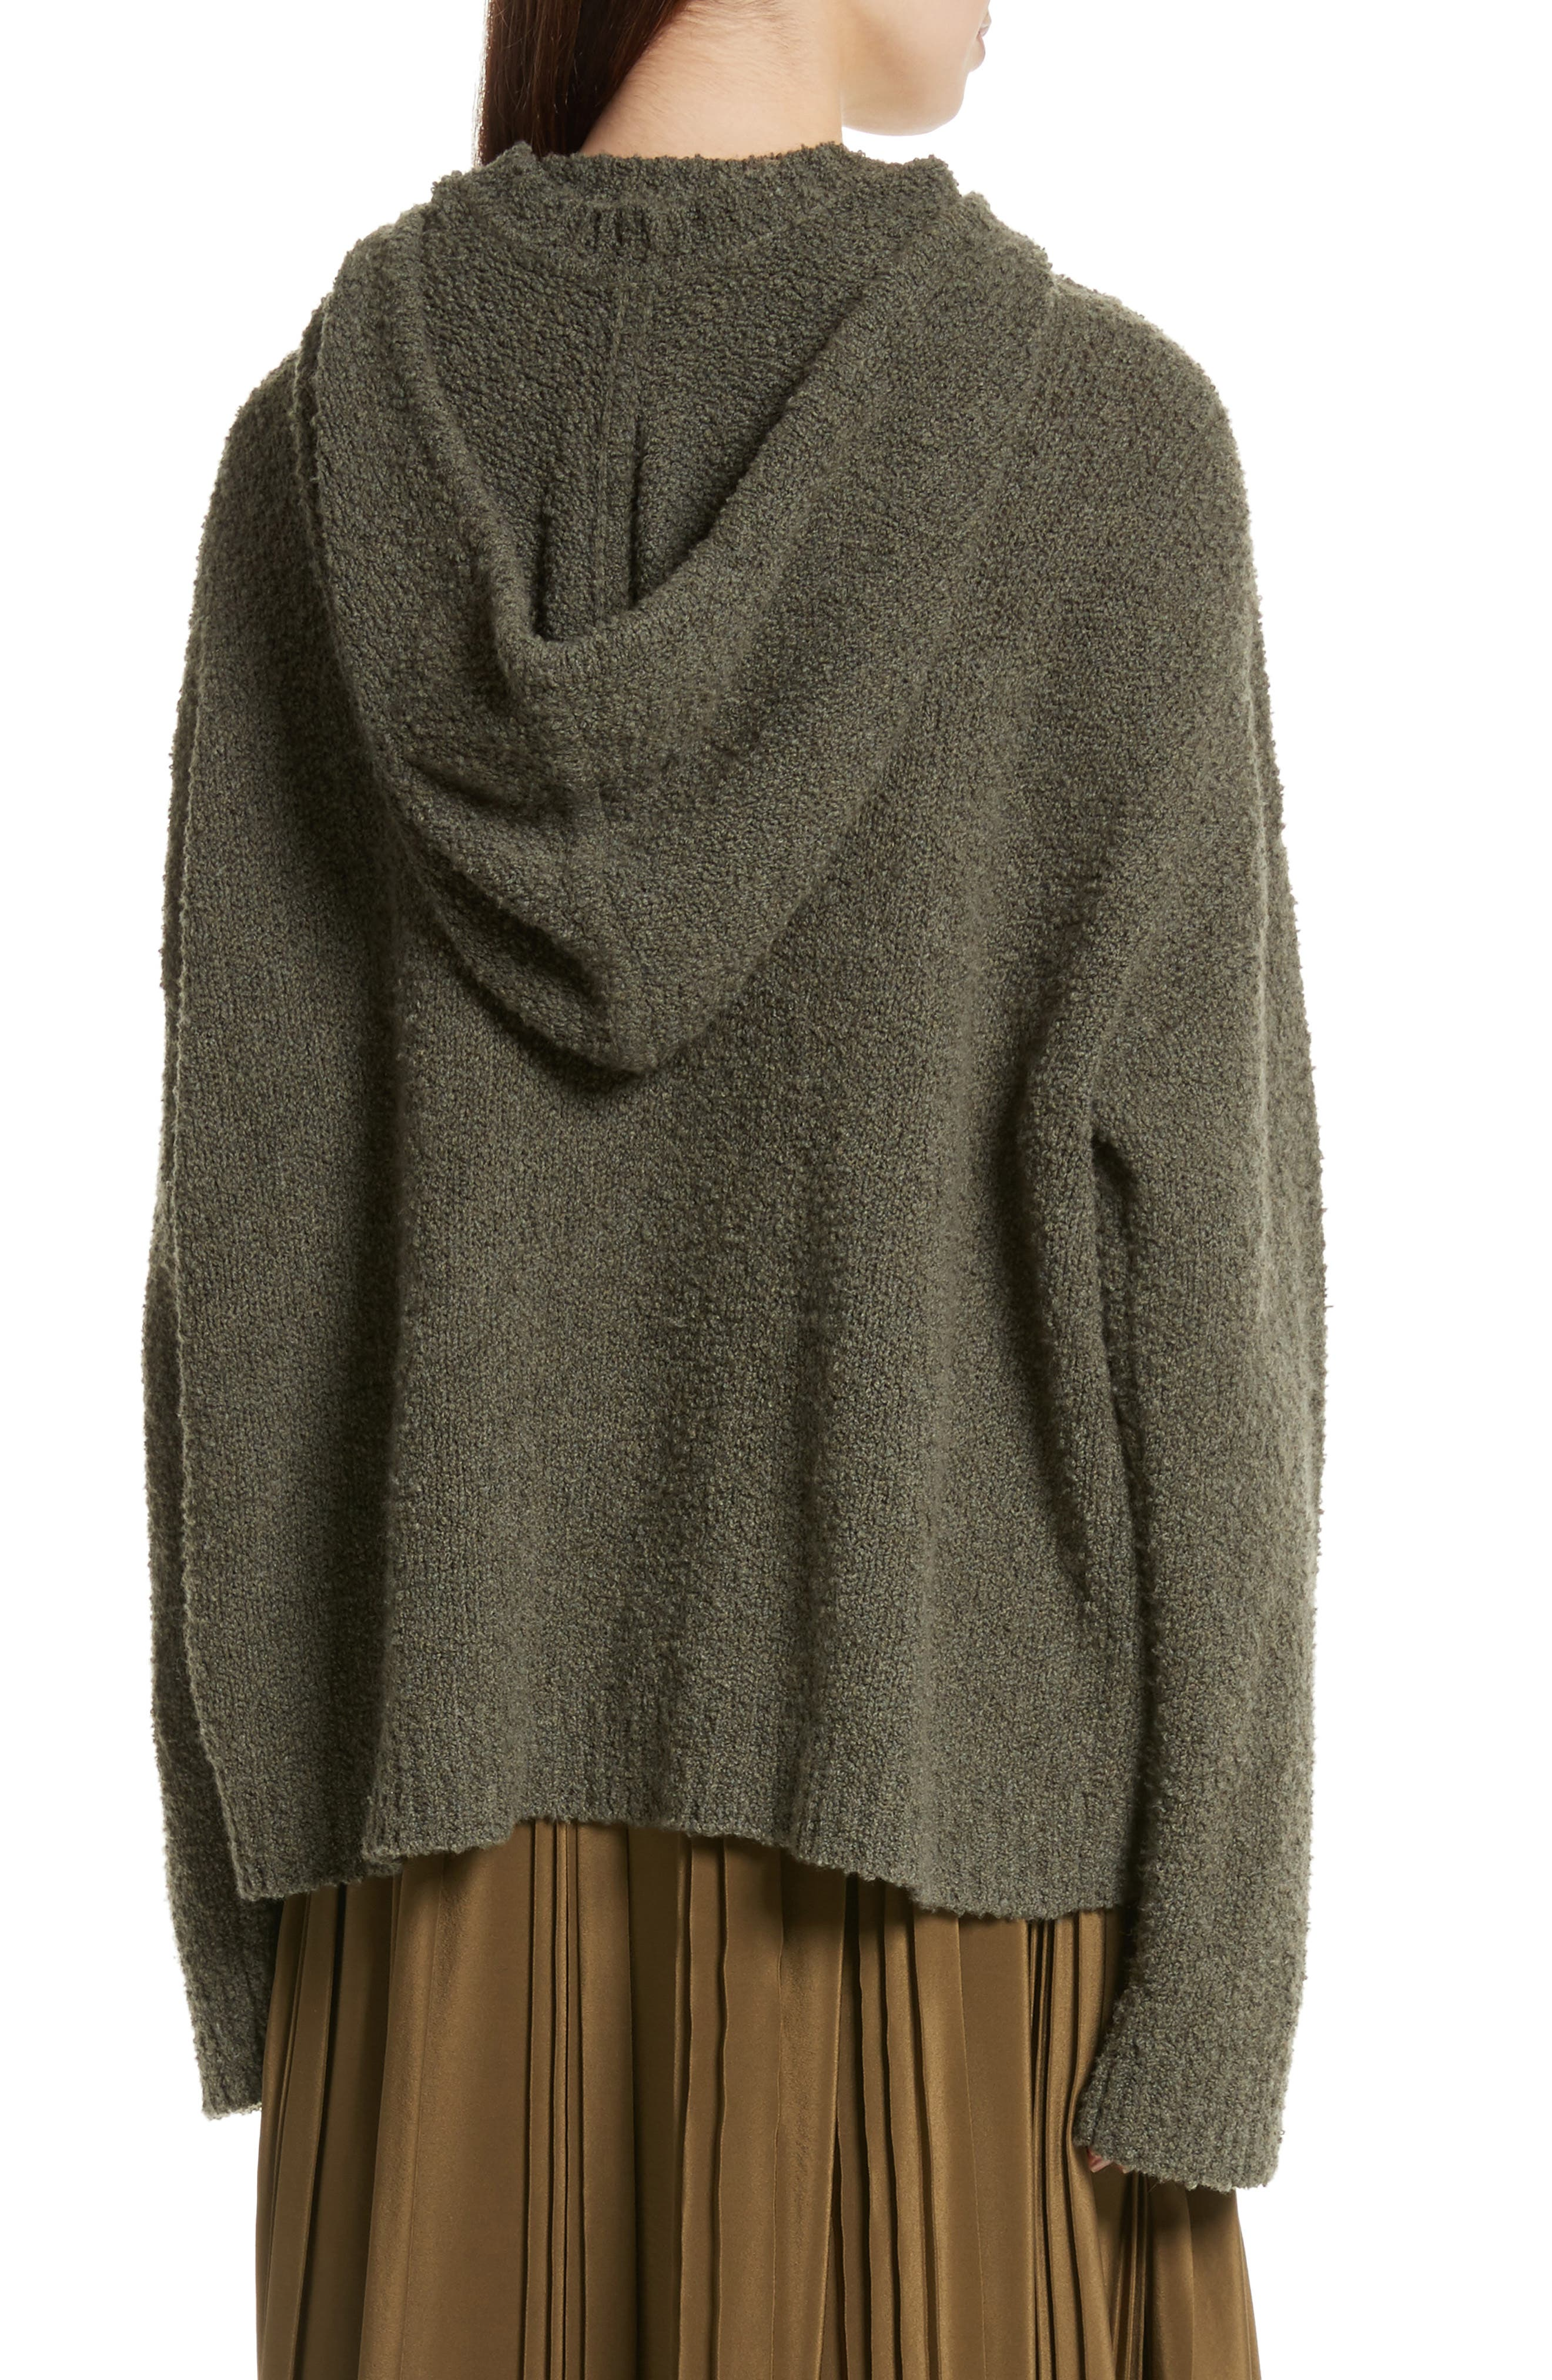 Merino Wool & Cashmere Reversible Hooded Sweater,                             Alternate thumbnail 3, color,                             300